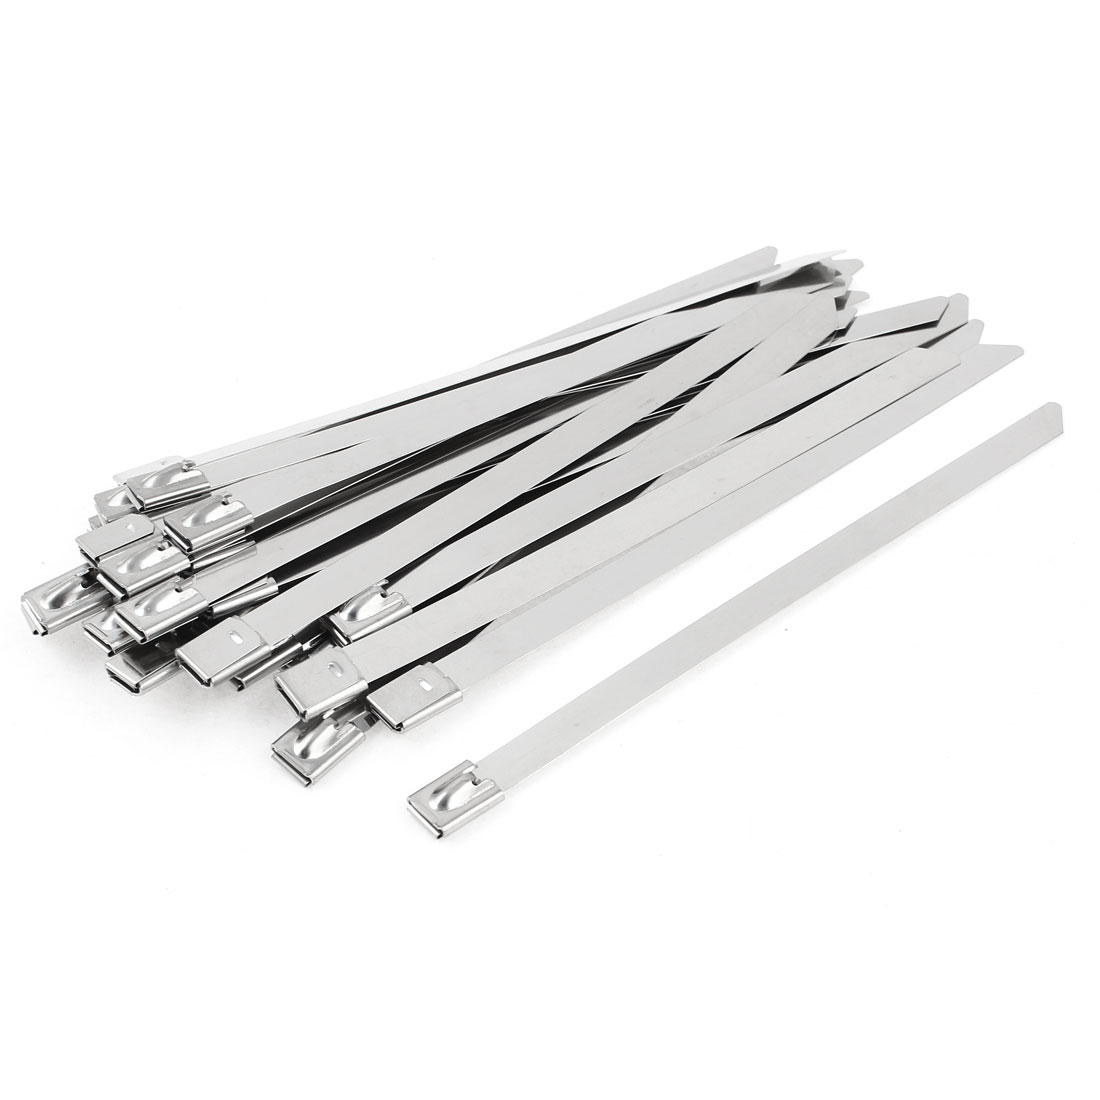 "30pcs 0.3"" x 6"" Flat Bar Self Locking Stainless Steel Zip Cable Ties"